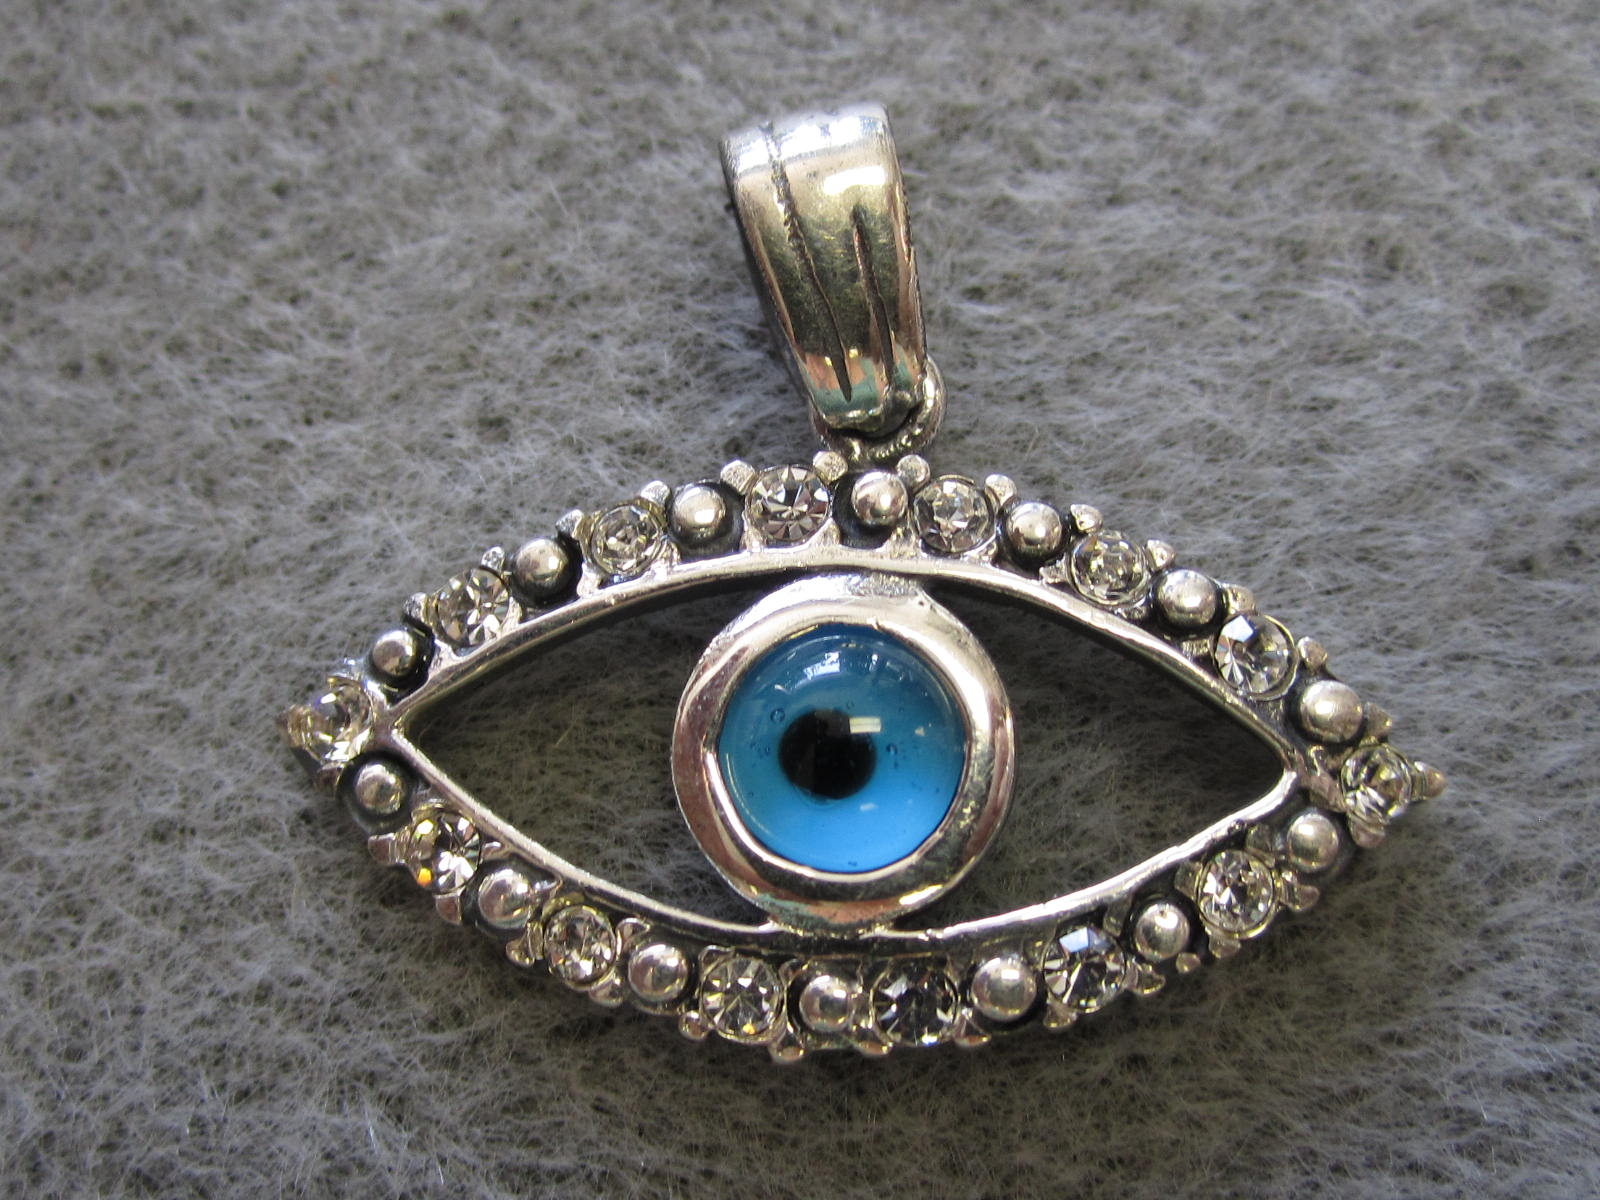 pendants pendant eye no gemstone chain evil products scoppa melissa